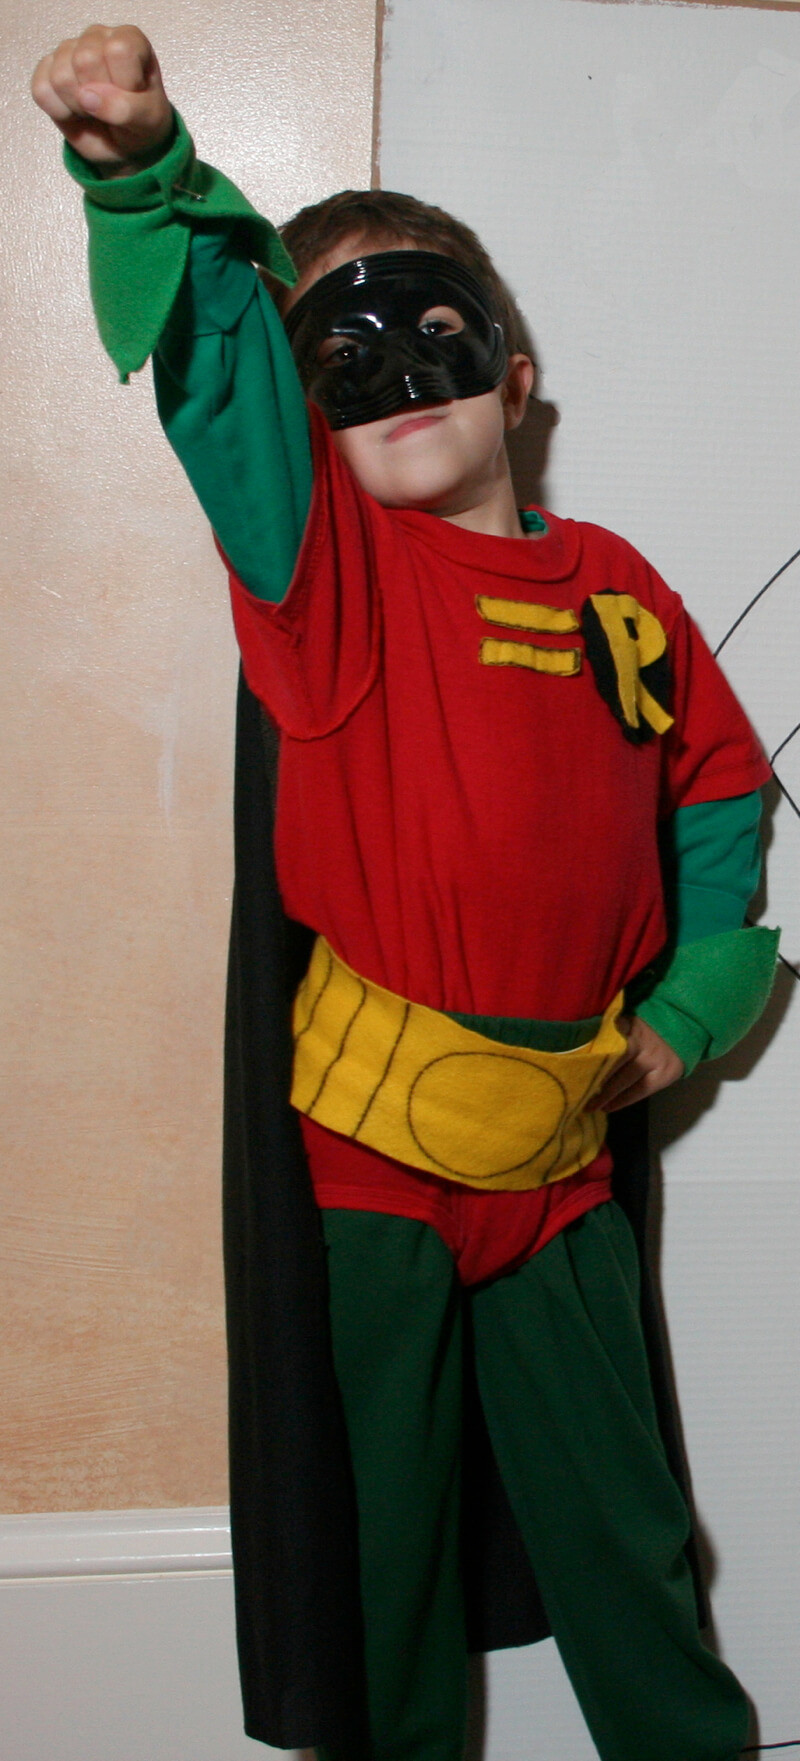 Best ideas about DIY Superhero Costumes For Kids . Save or Pin 12 DIY Superhero Costume Ideas for Kids Now.